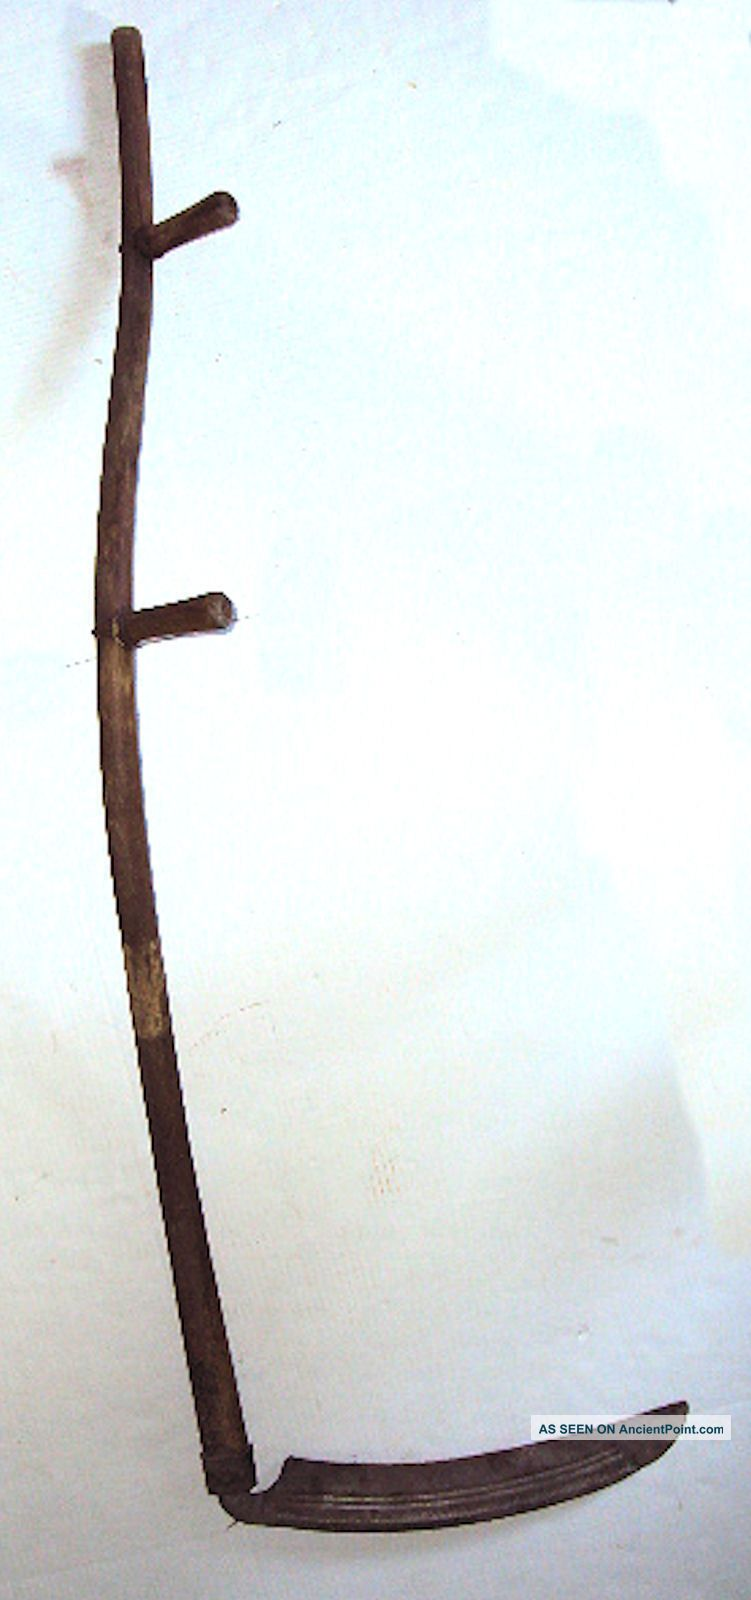 Primitive Antique Scythe (hay Cutter) Farm Tool/history/wall/fireplace Decor Primitives photo